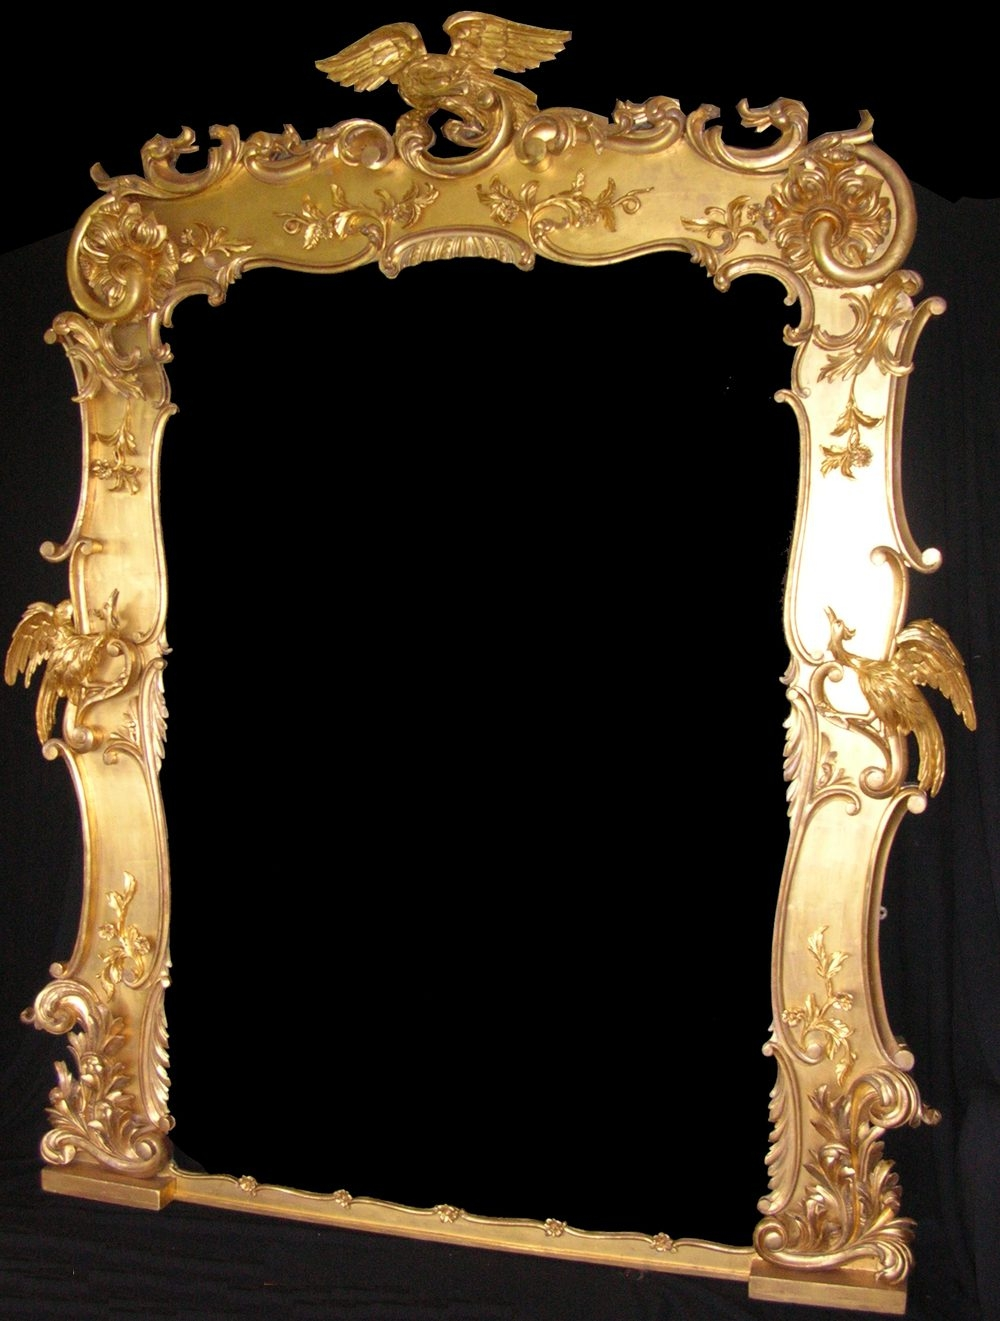 Antiques Atlas Antique Large Regency Gilt Mirror Regarding Gilt Mirrors For Sale (Image 5 of 15)